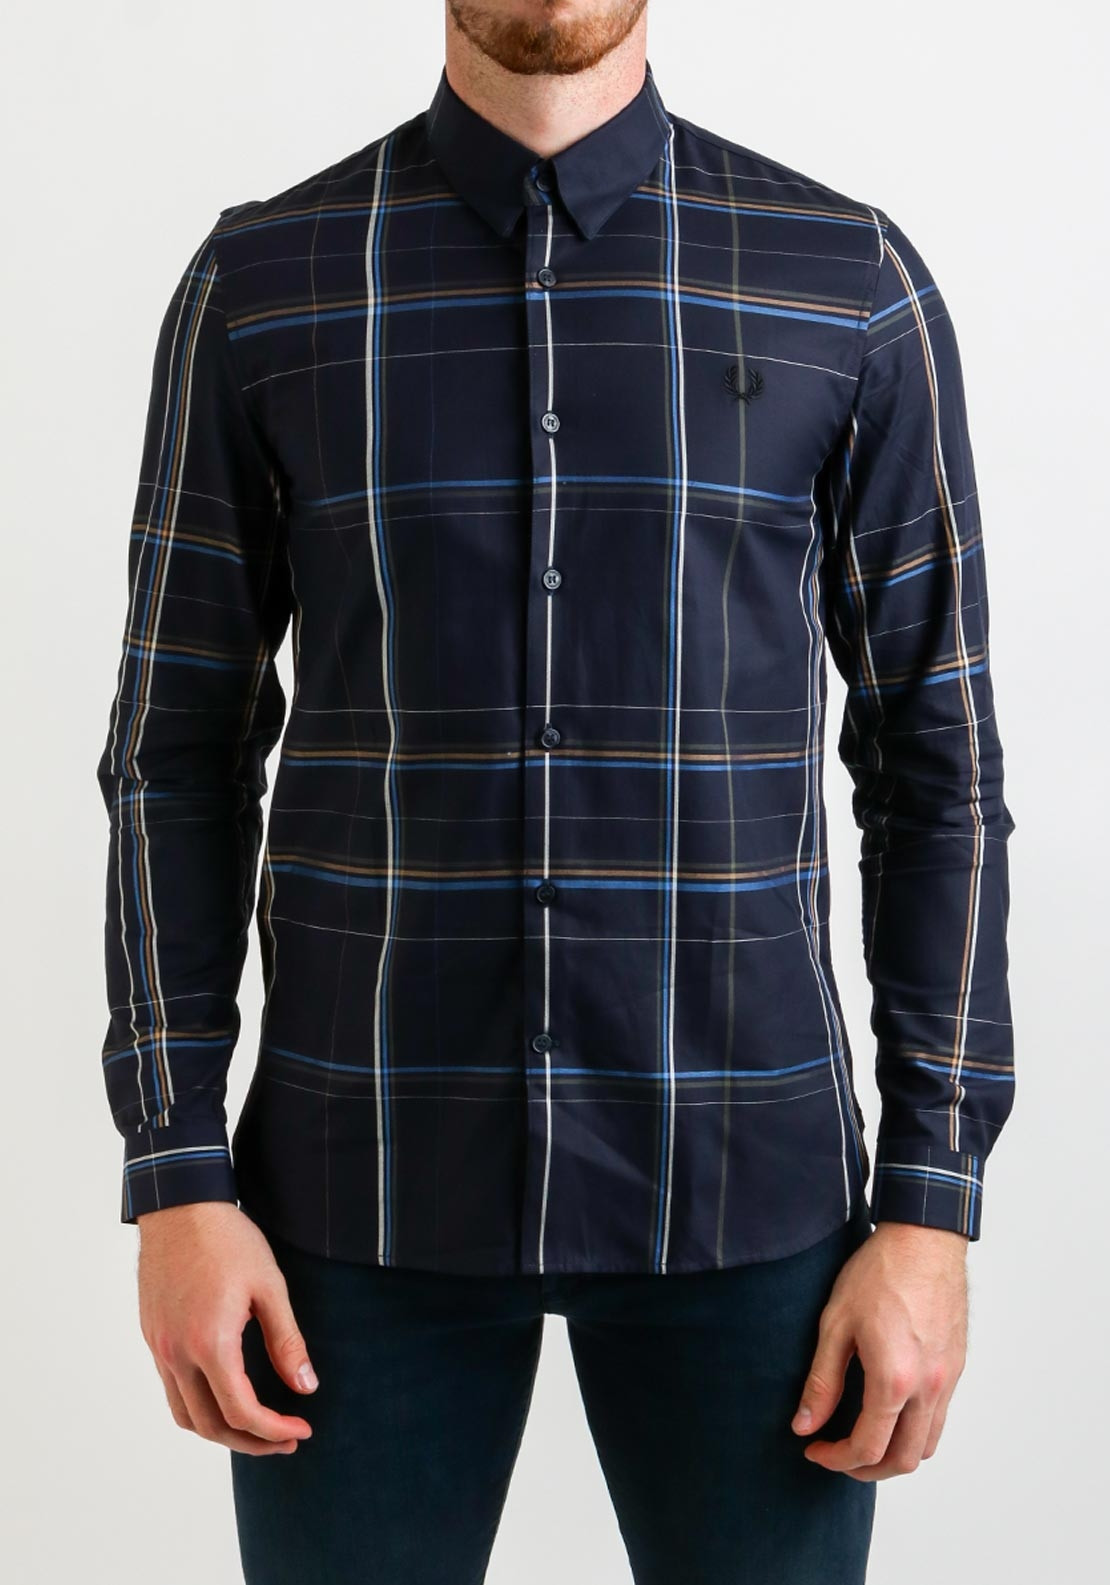 e639e4c8 Fred Perry Enlarged Check Shirt, Navy. Be the first to review this product